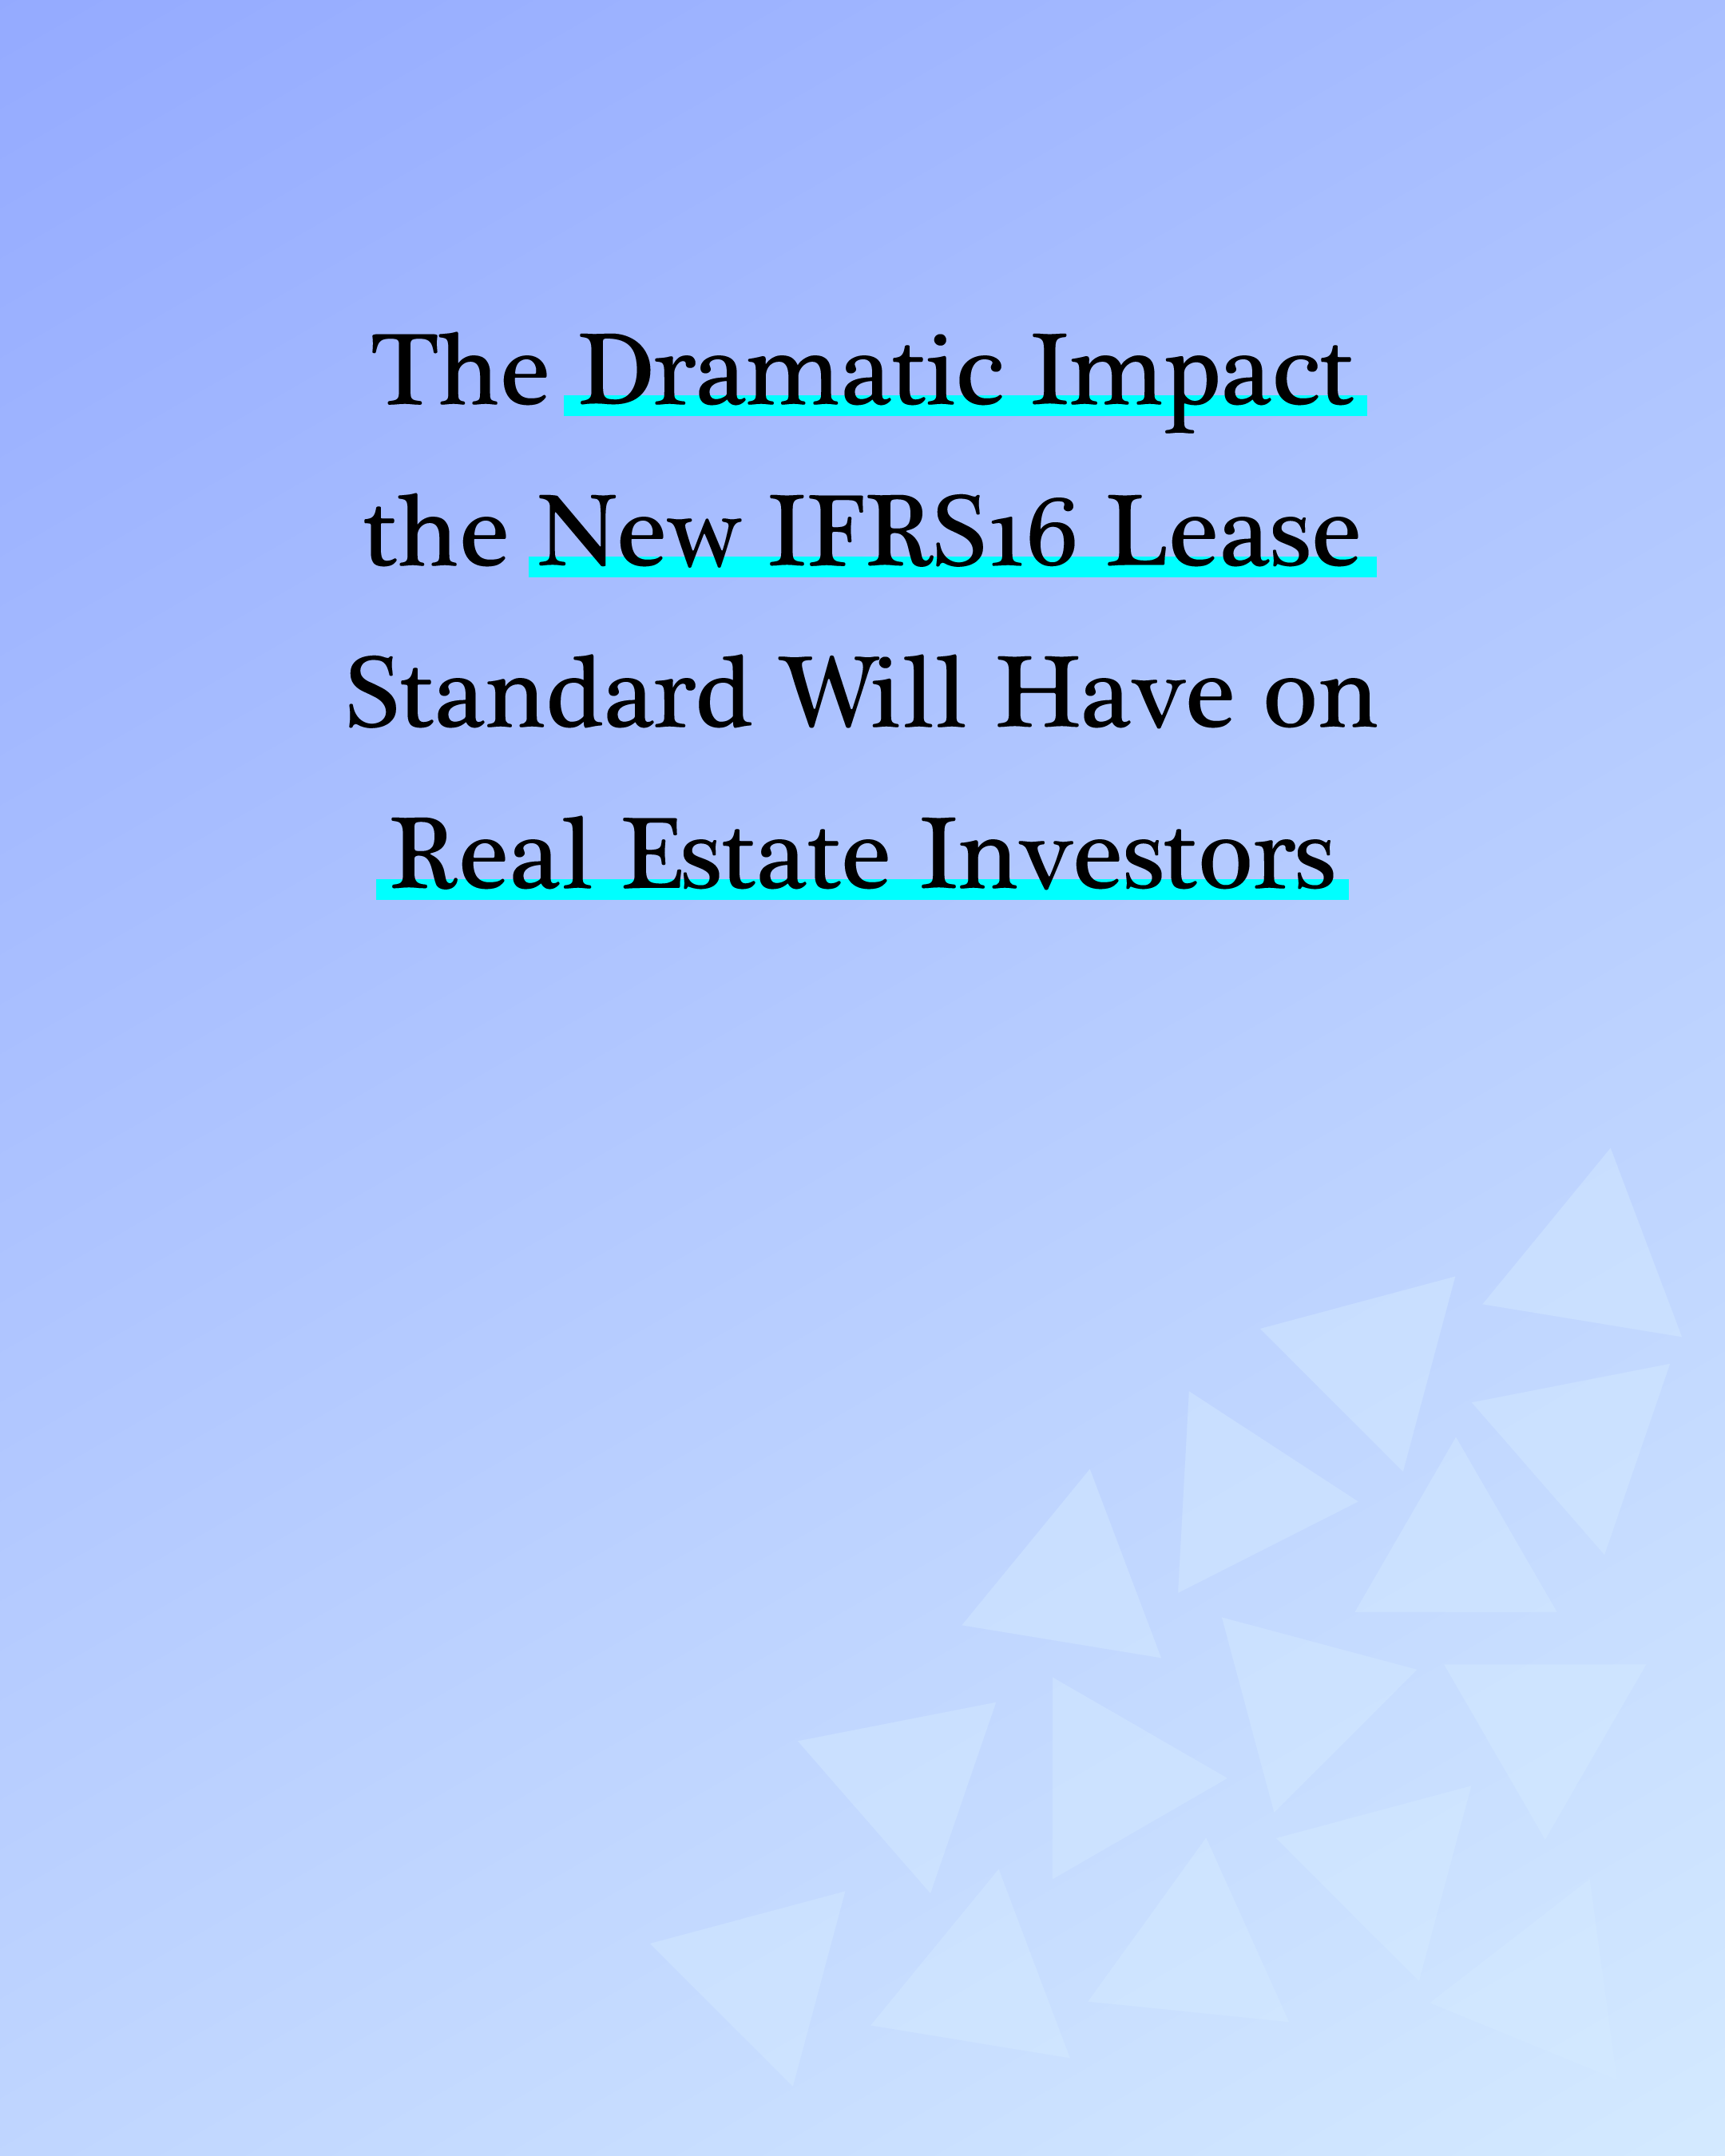 The Dramatic Impact the New IFRS16 Lease Standard Will Have on Real Estate Investors